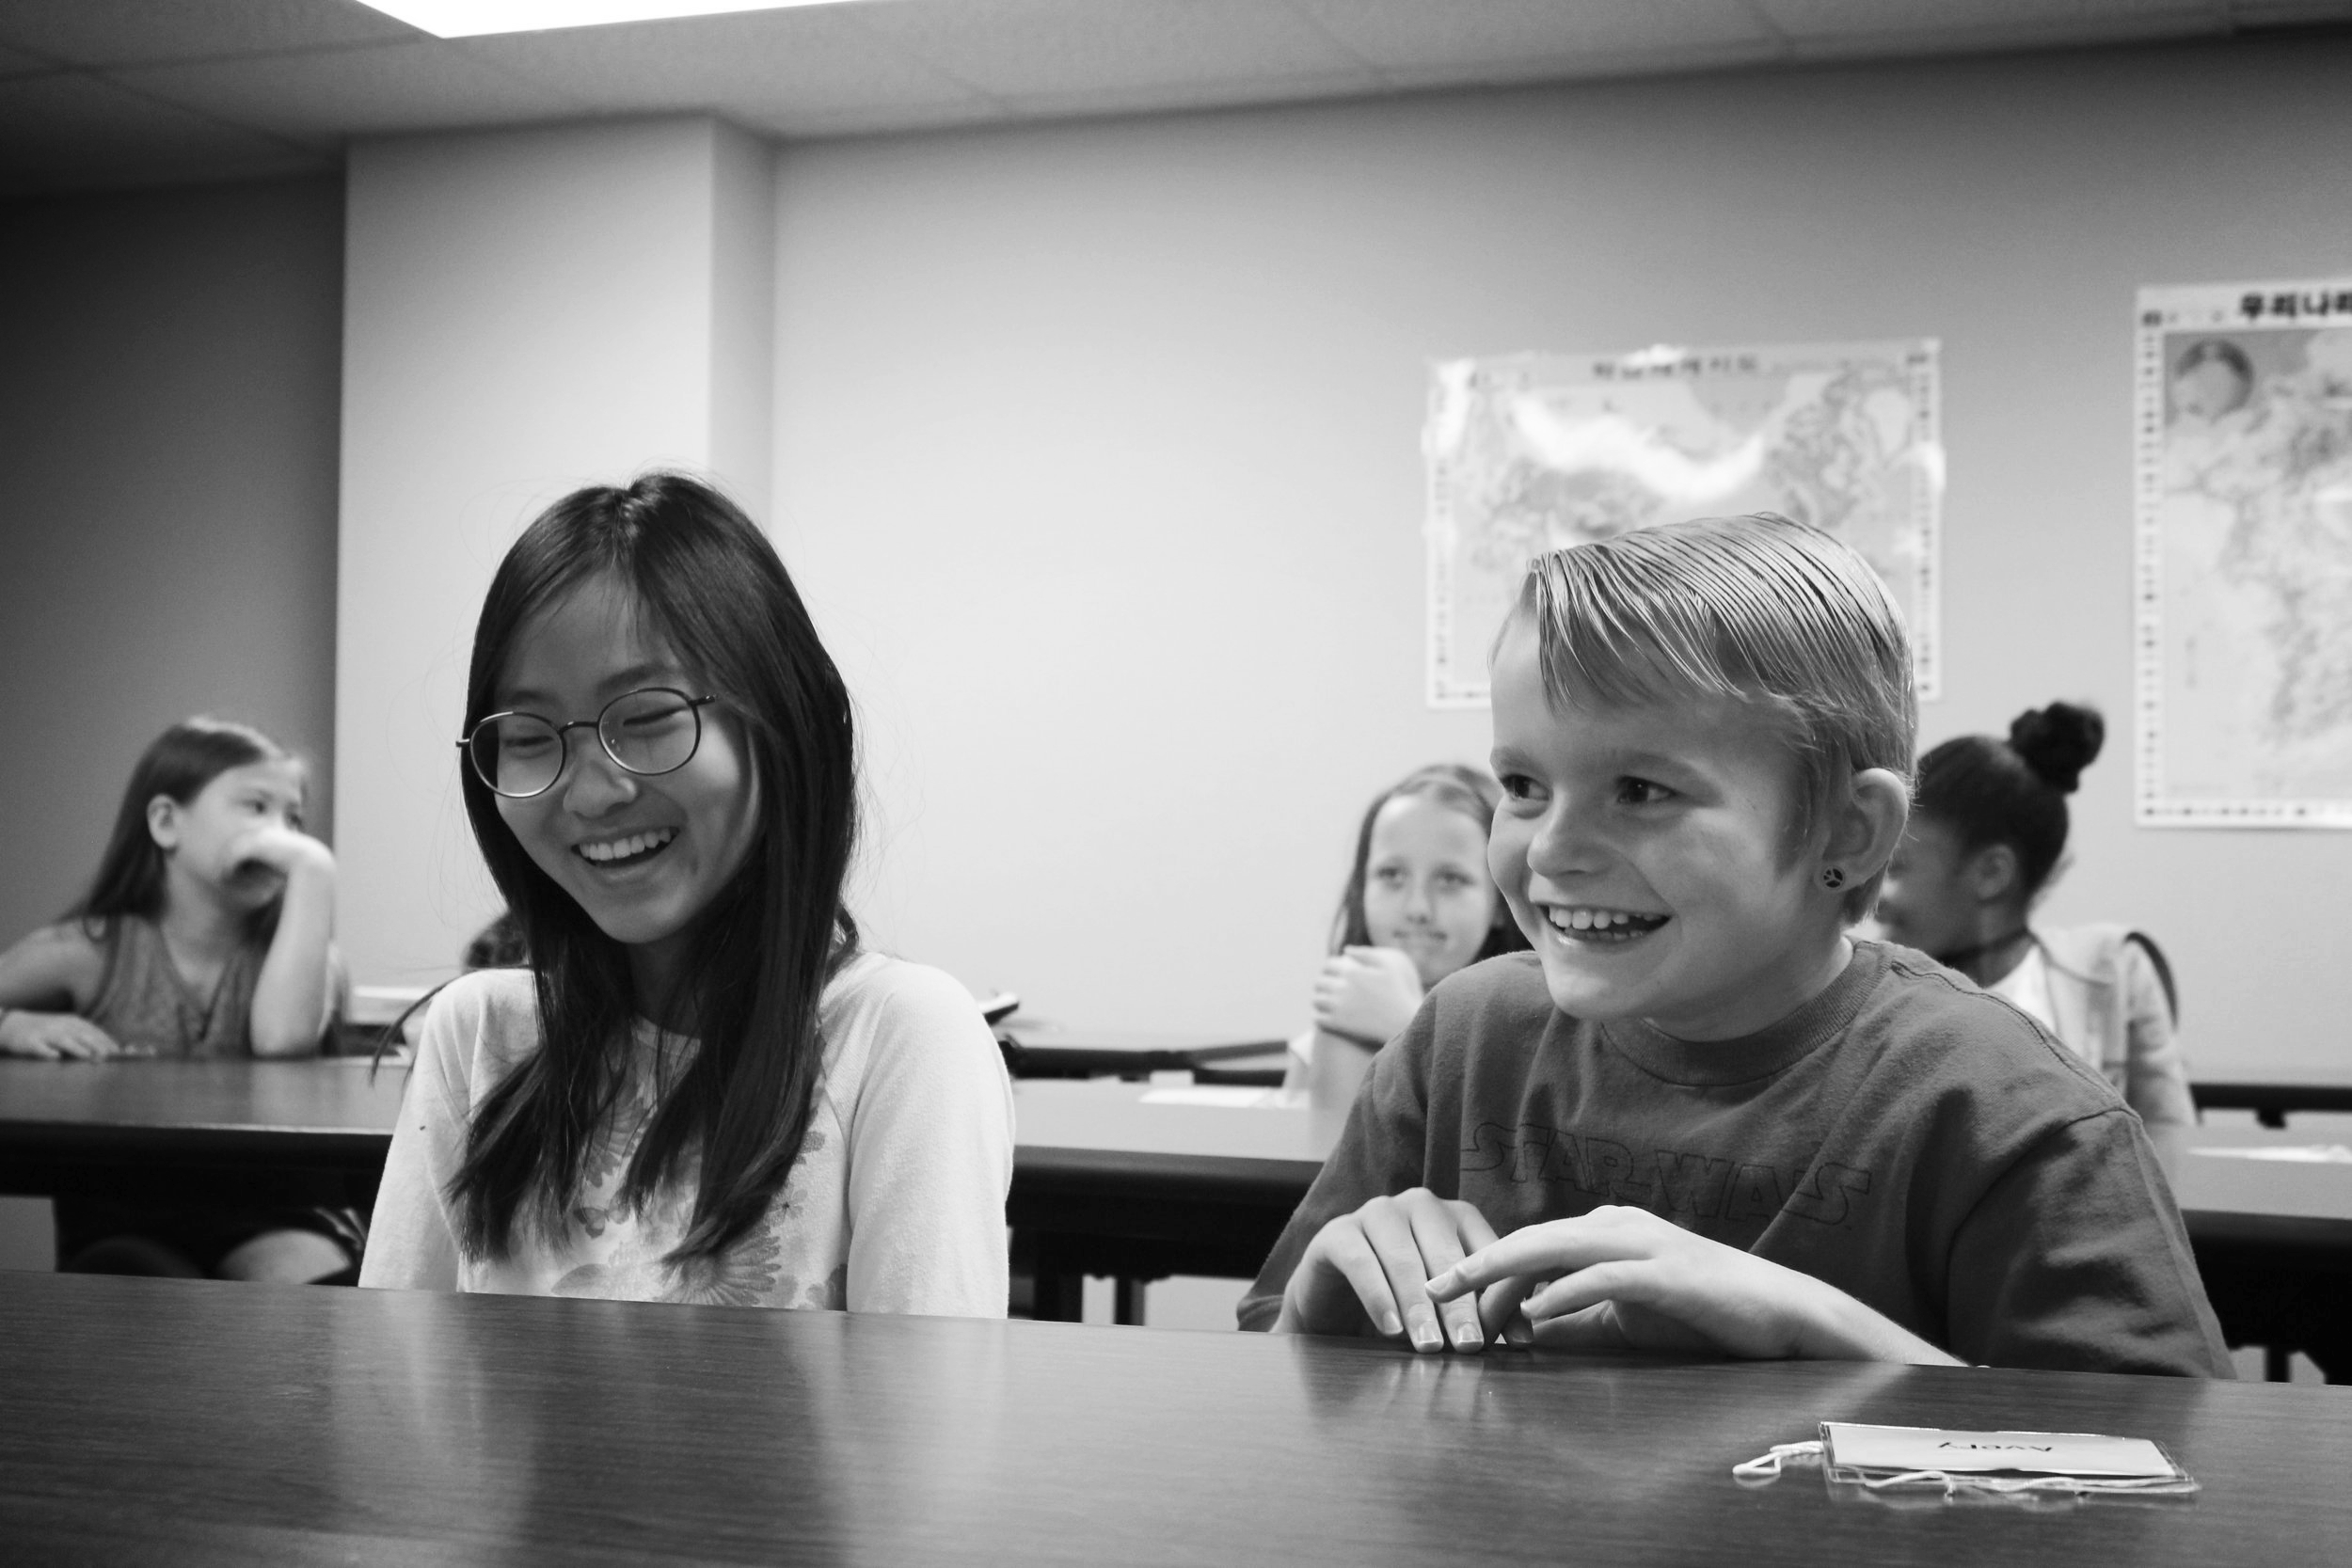 Students learn about language, culture and build friendships through KSL programs